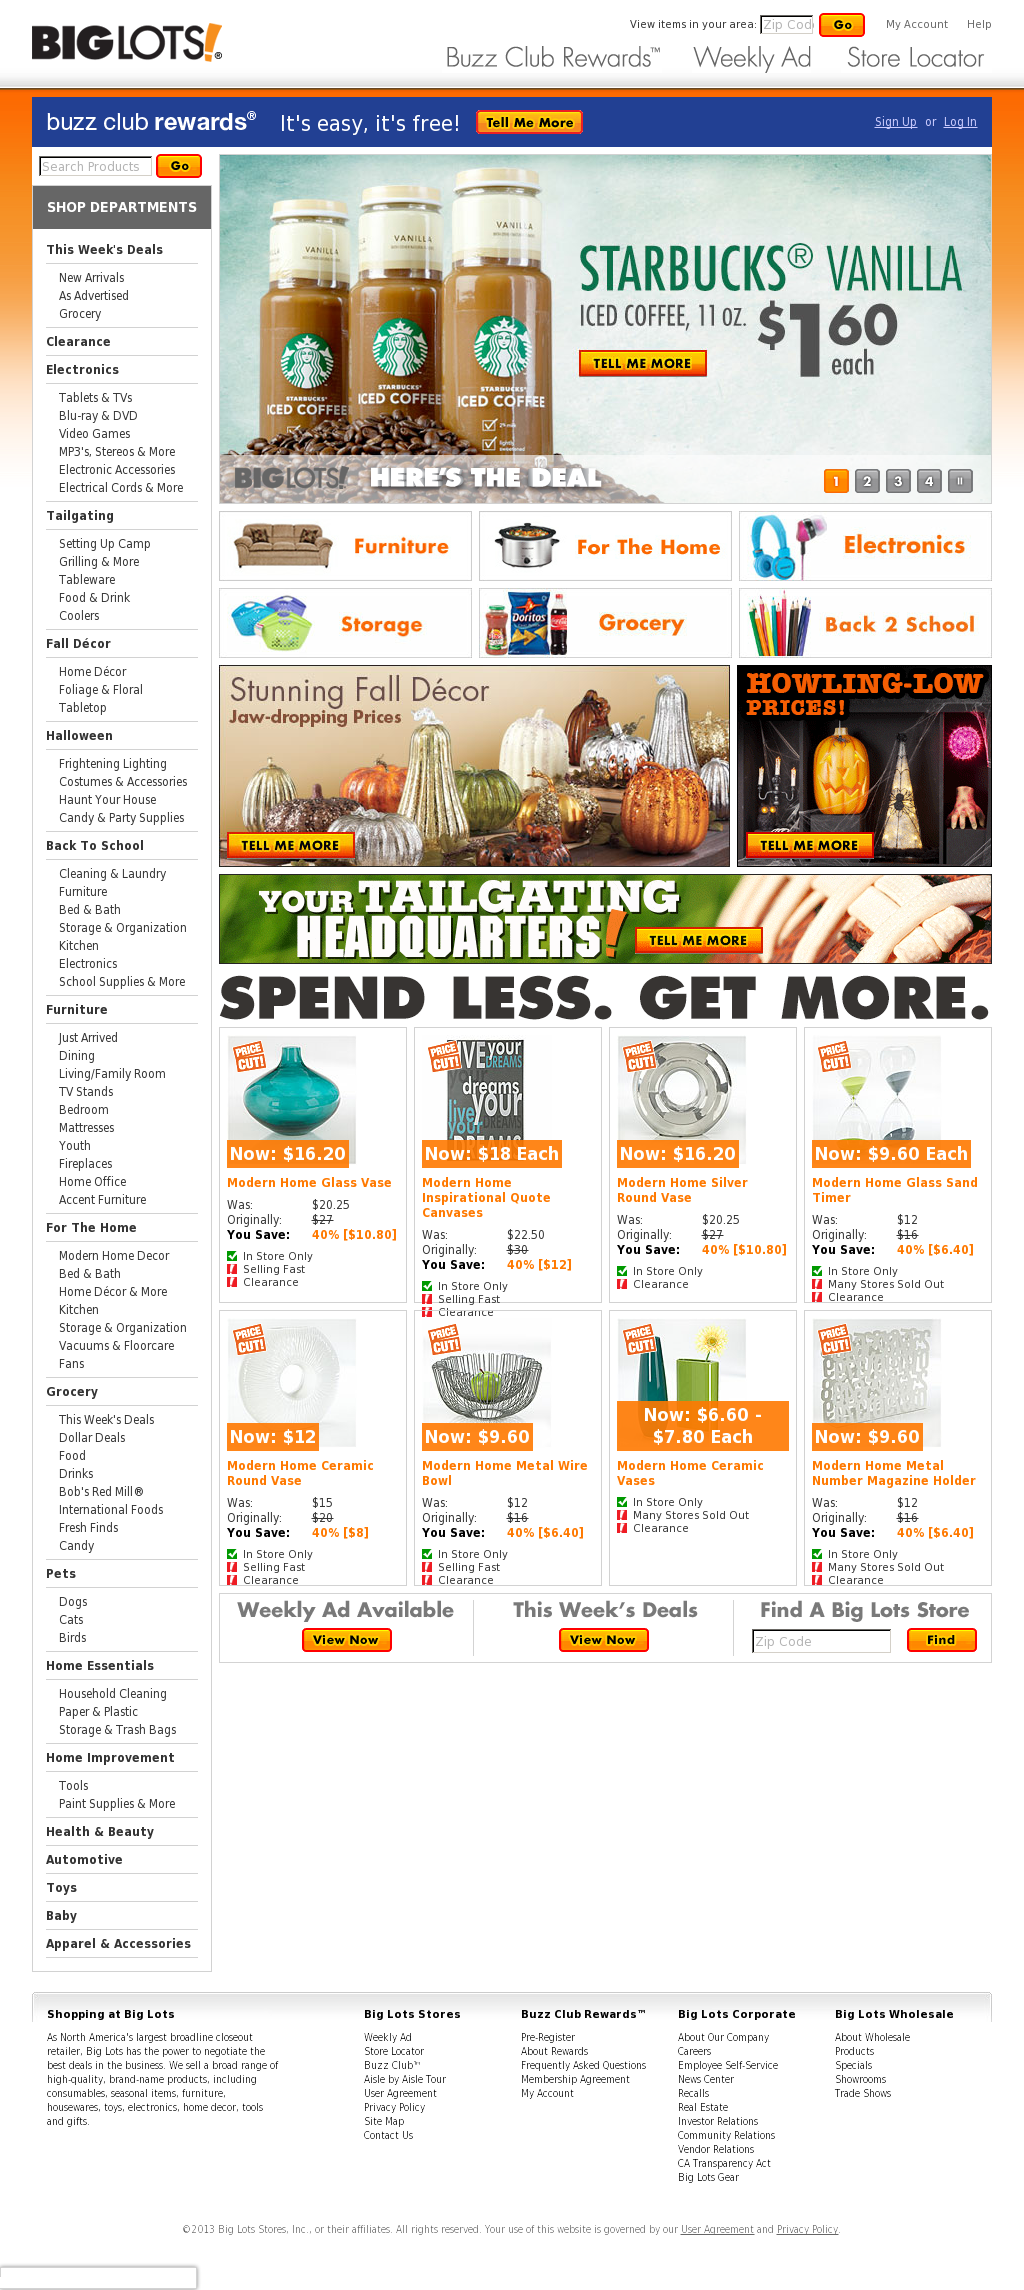 Big Lots Competitors, Revenue and Employees - Owler Company Profile